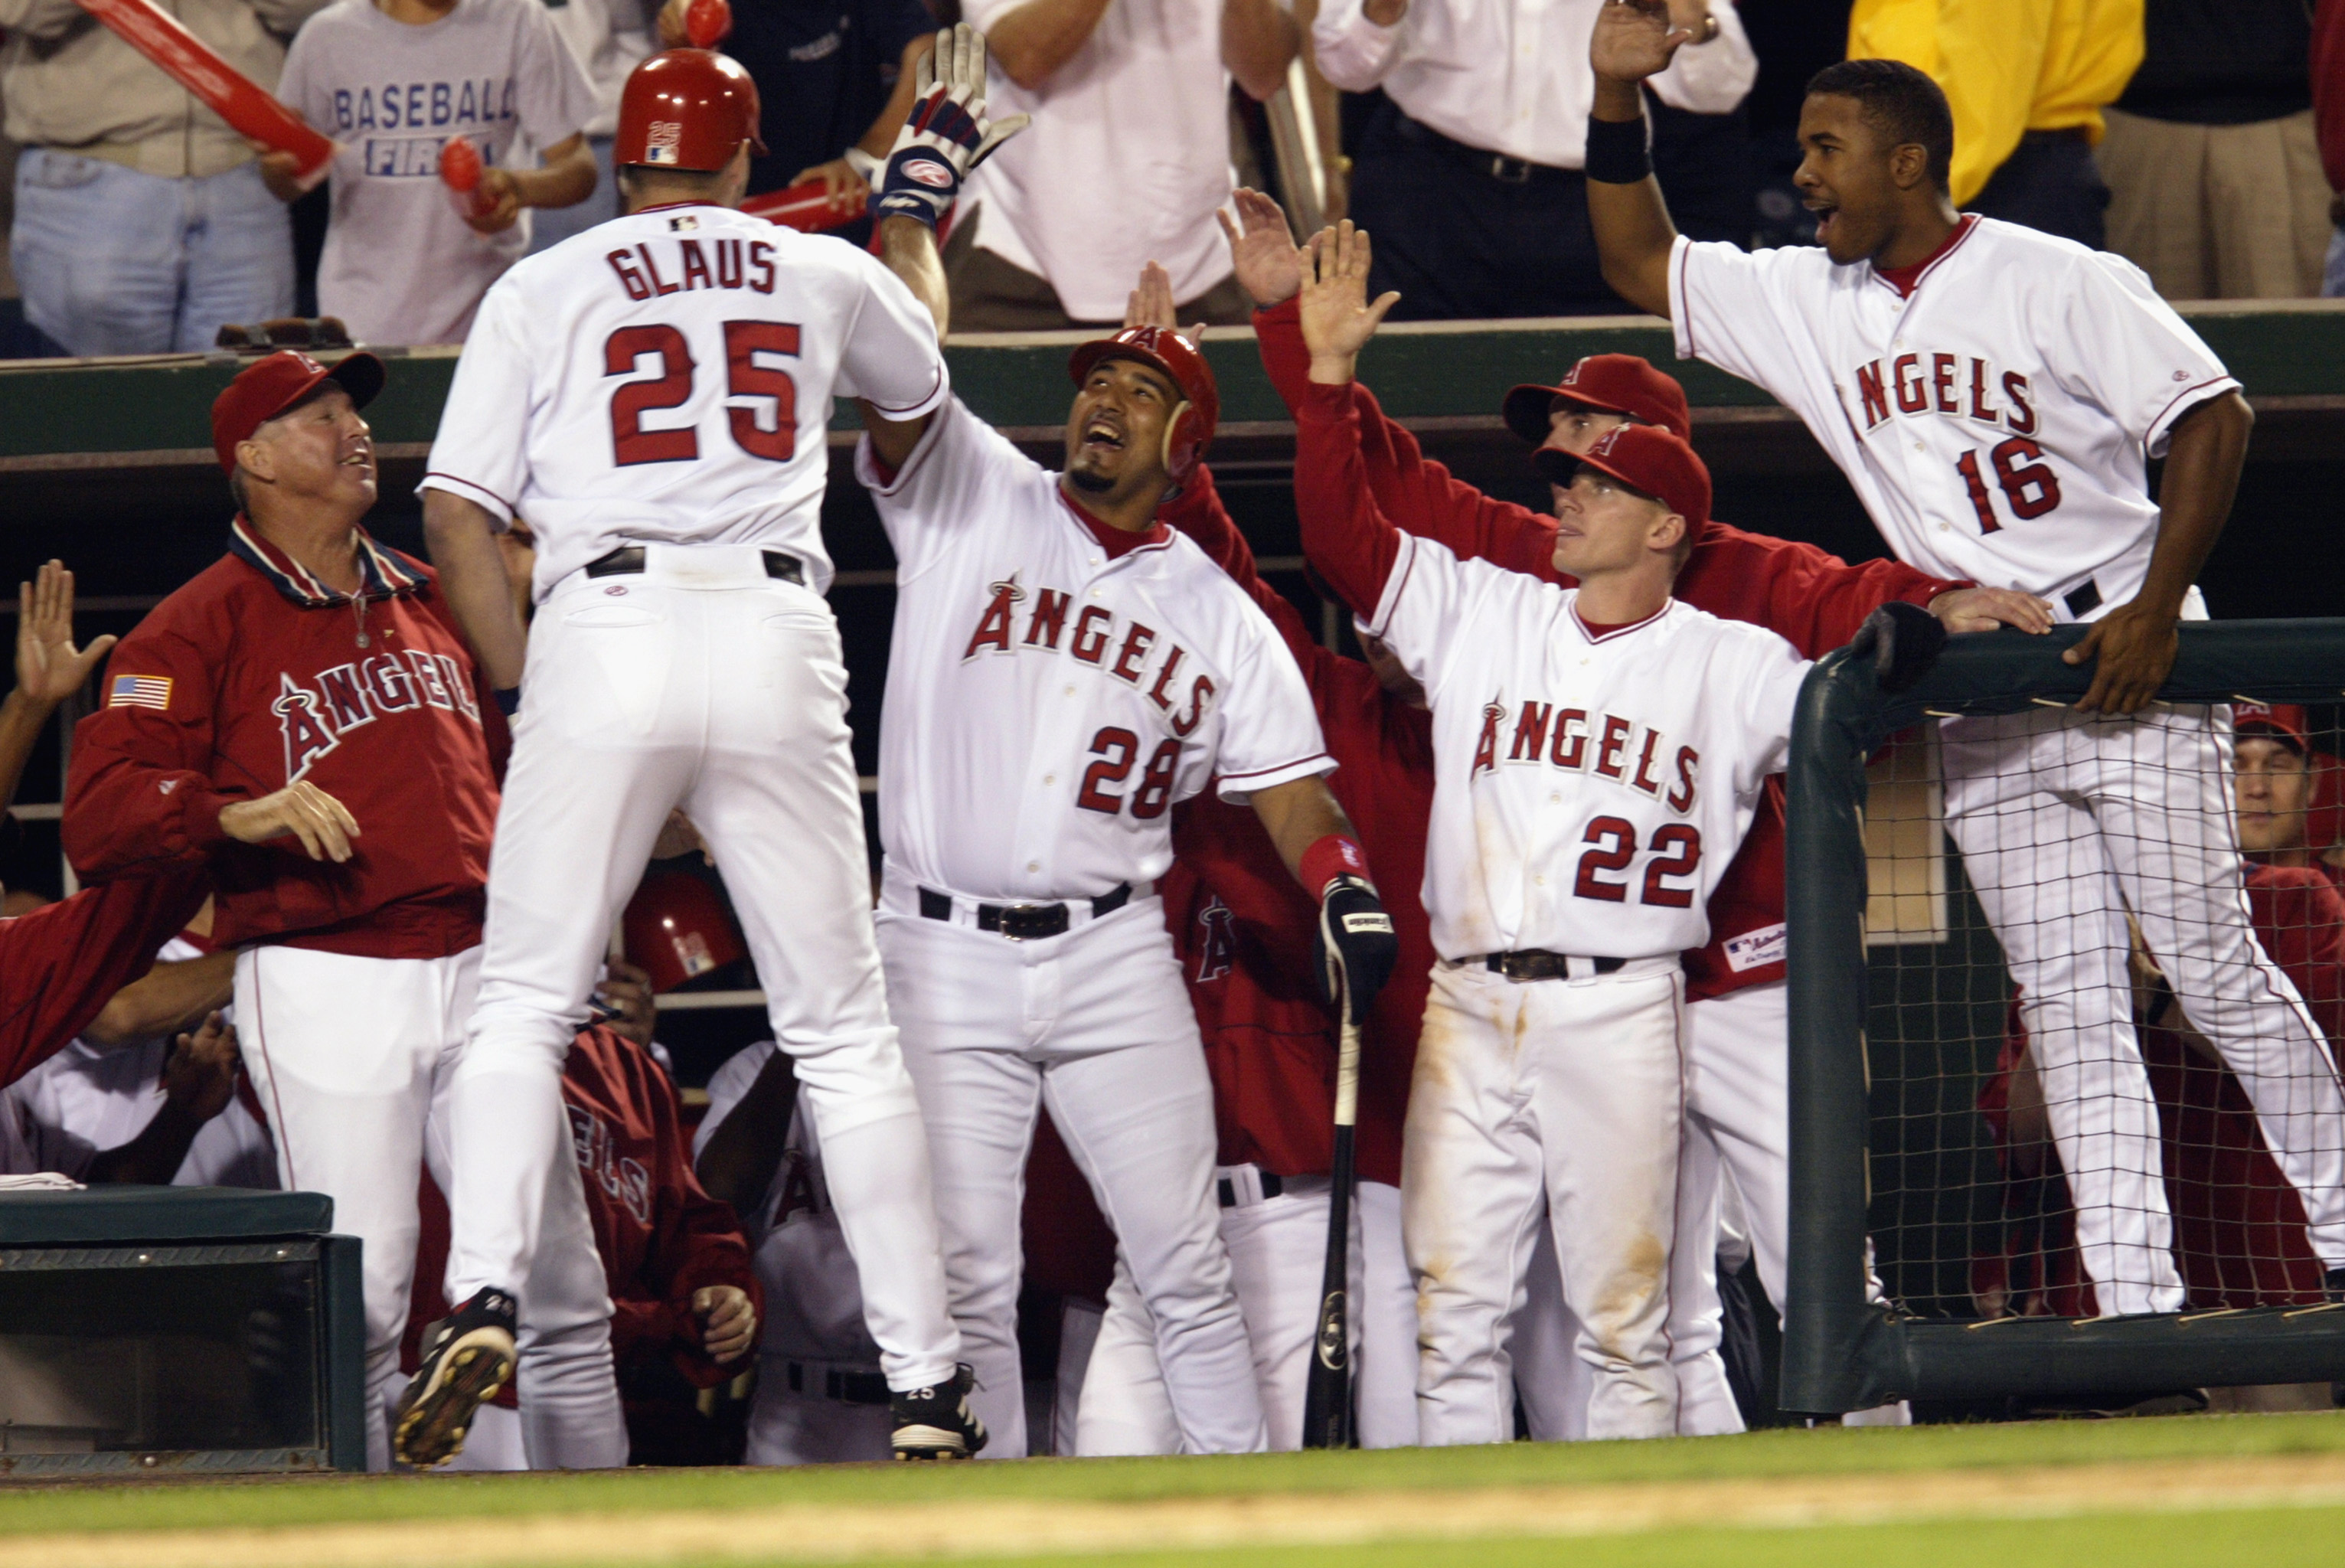 Three of these guys are on this year's ballot; #25 Troy Glaus, #22 David Eckstein, #16 Garret Anderson